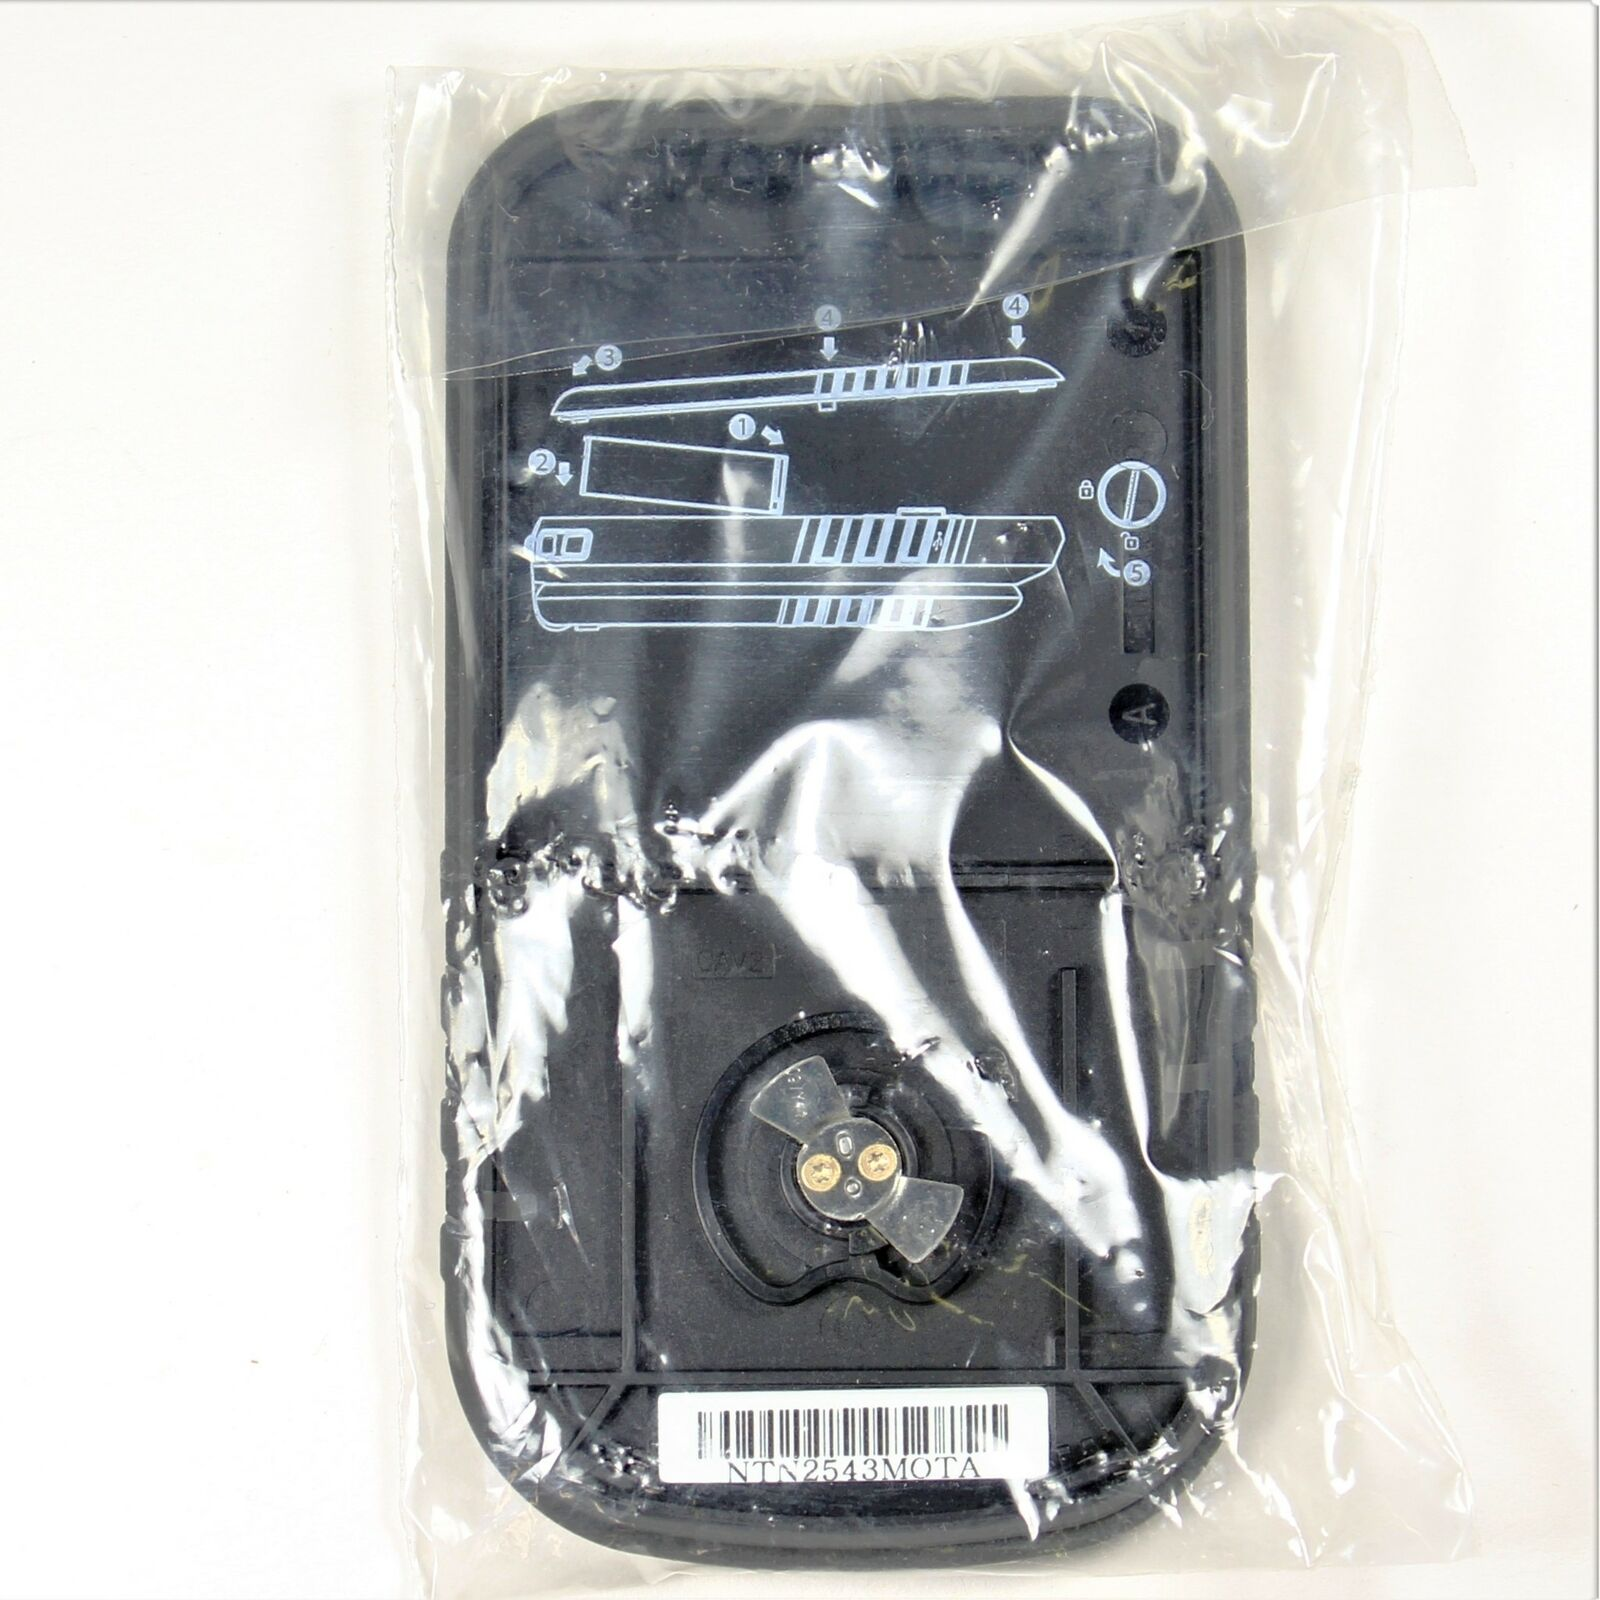 New Motorola i680 Battery Back Door Cover Replacement - NTN2543MOTA